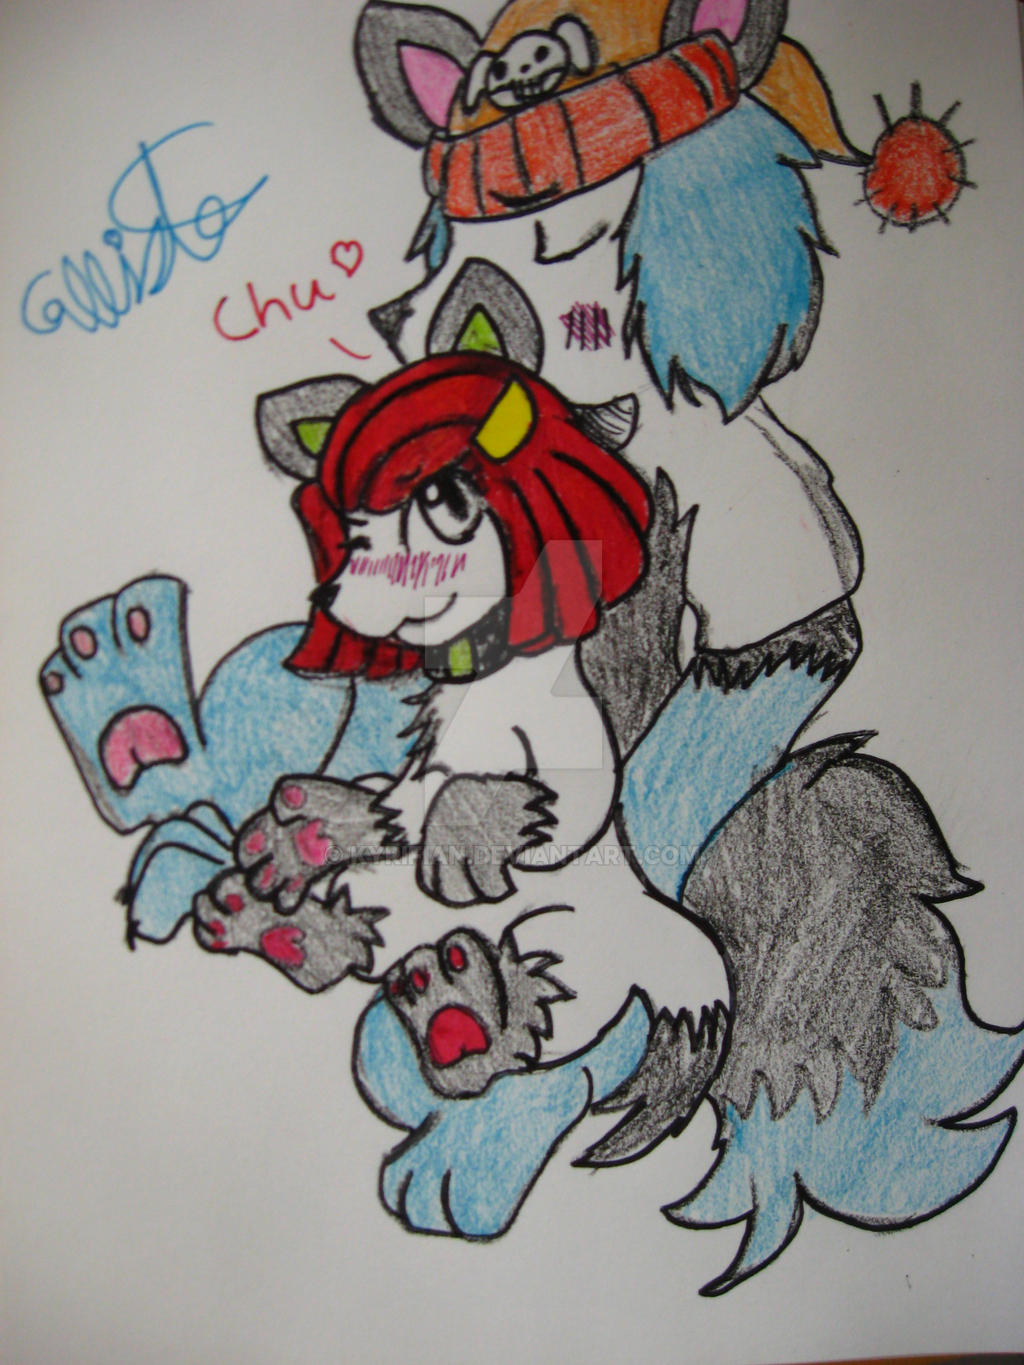 Corey Riffin and Laney Penn as puppies by Kyrifian